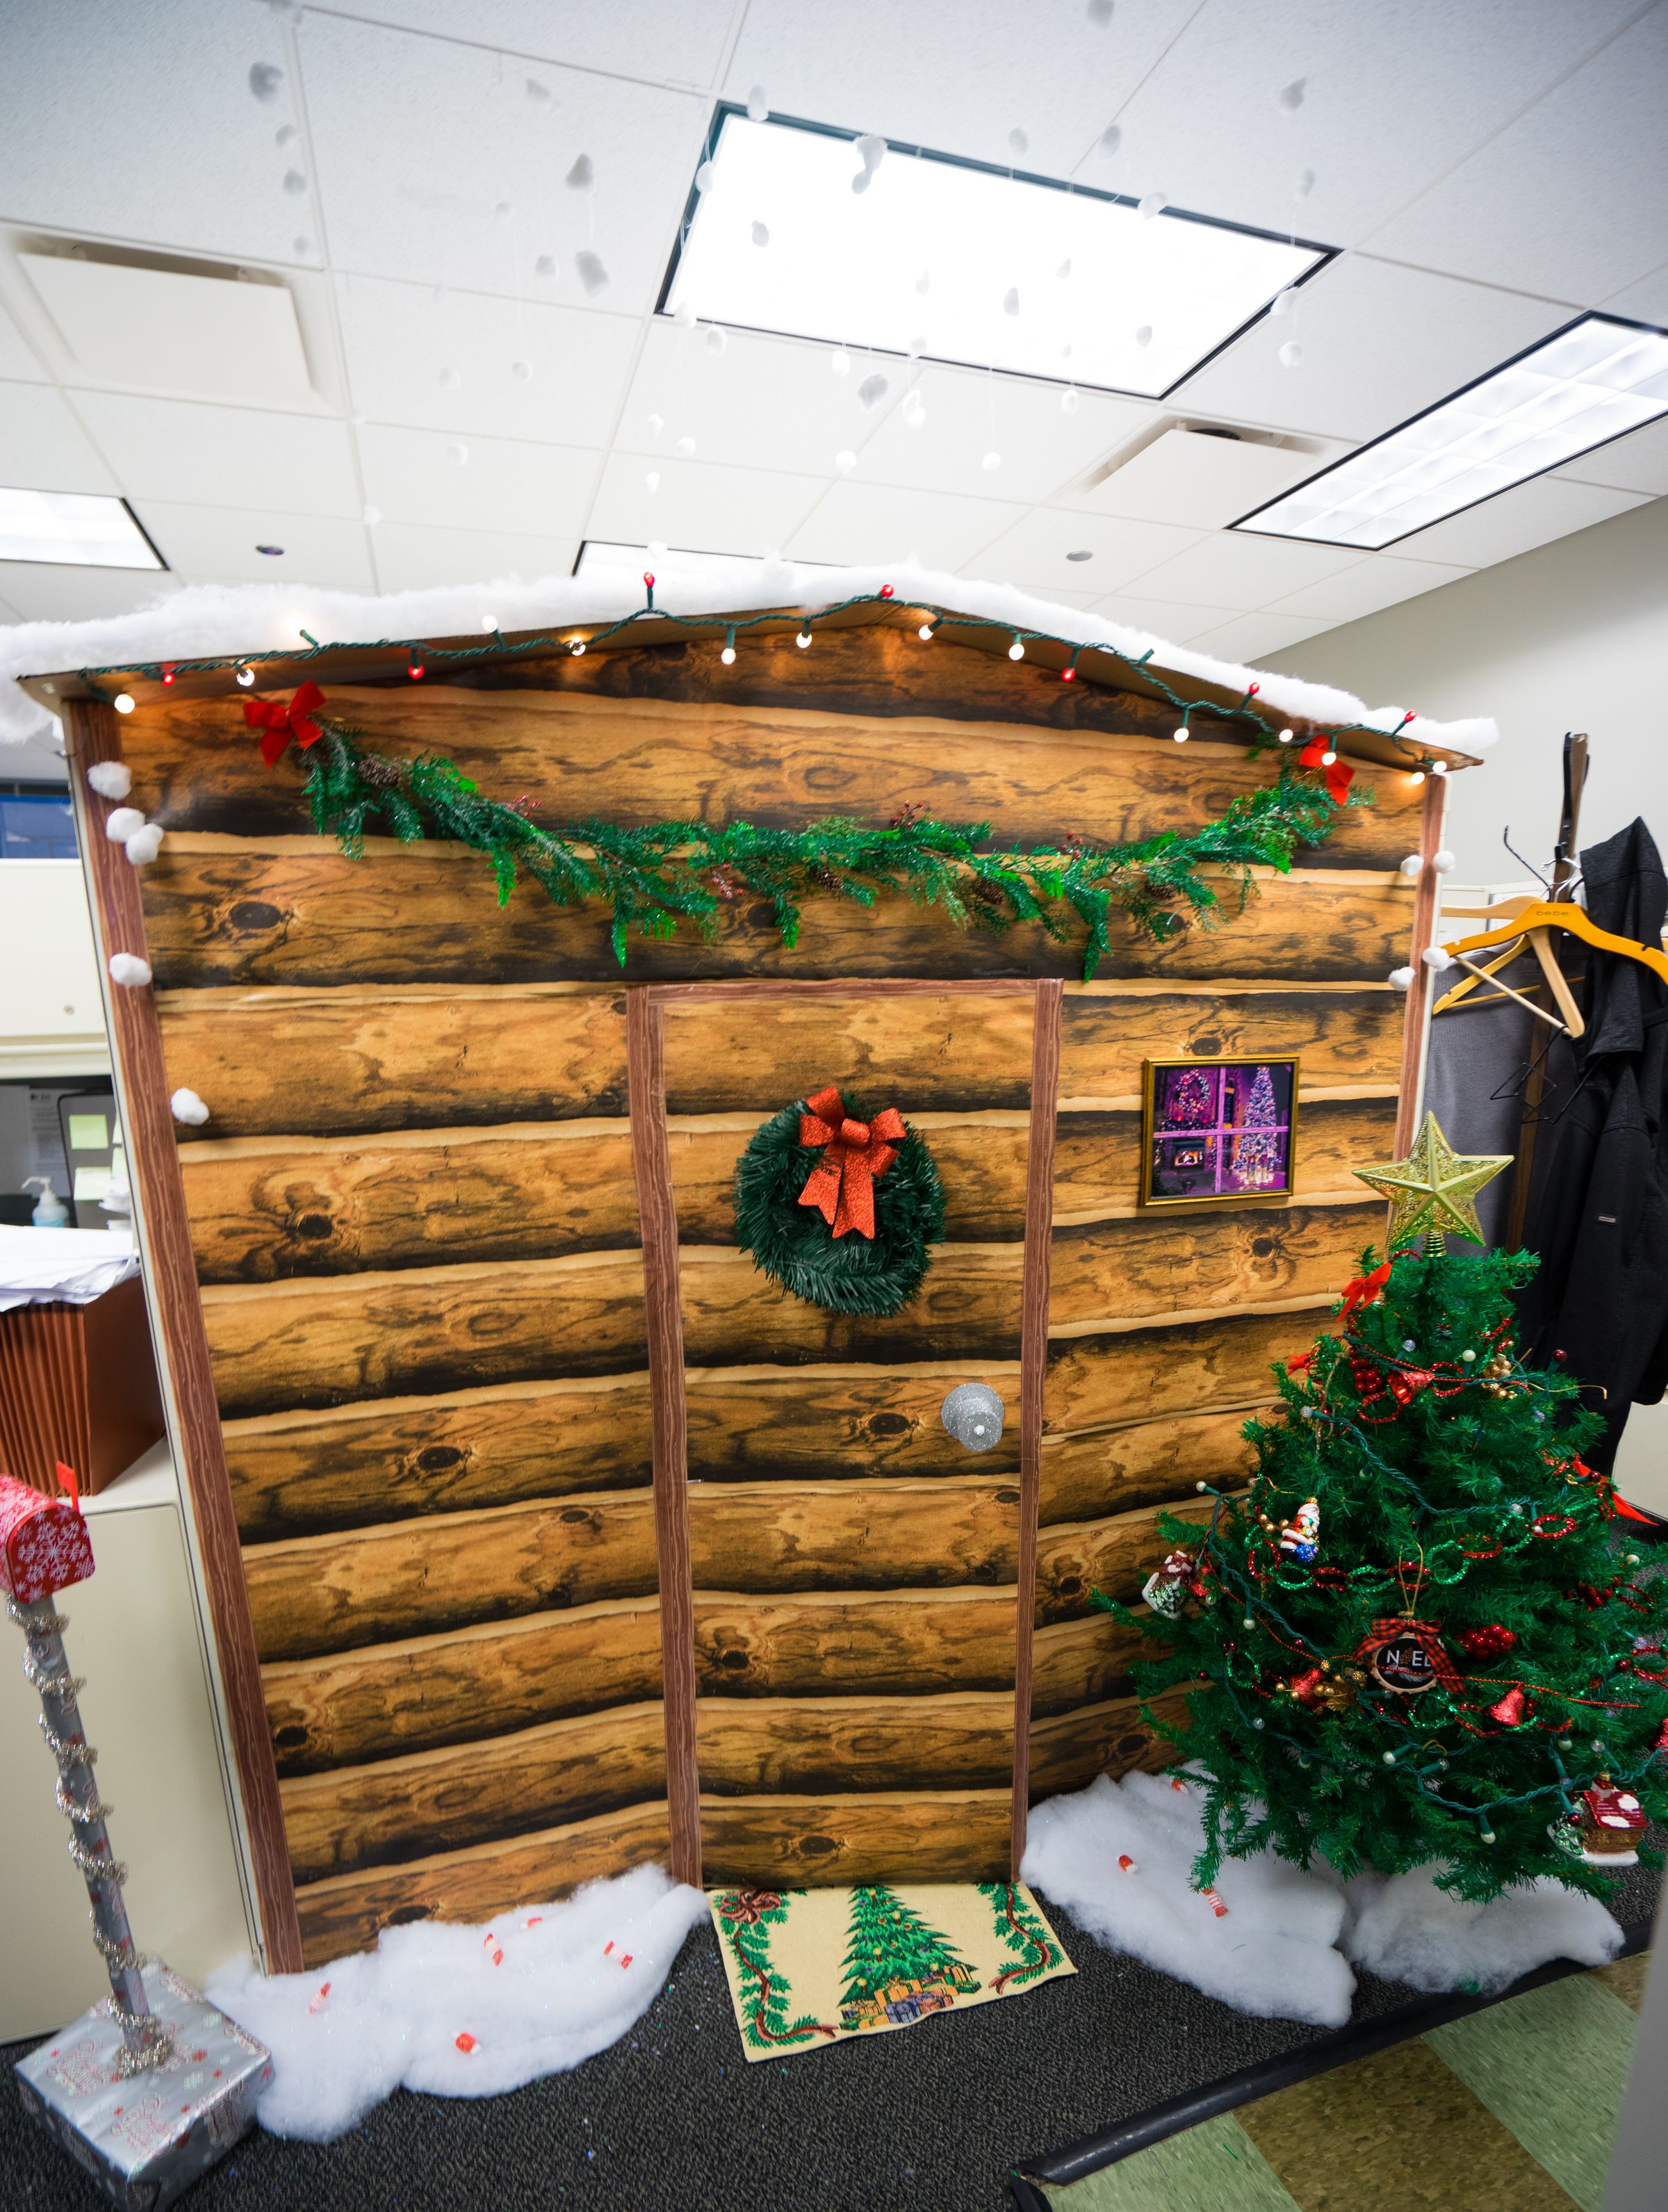 Work Cubicle Turned Into A Christmas Log Cabin Made Out